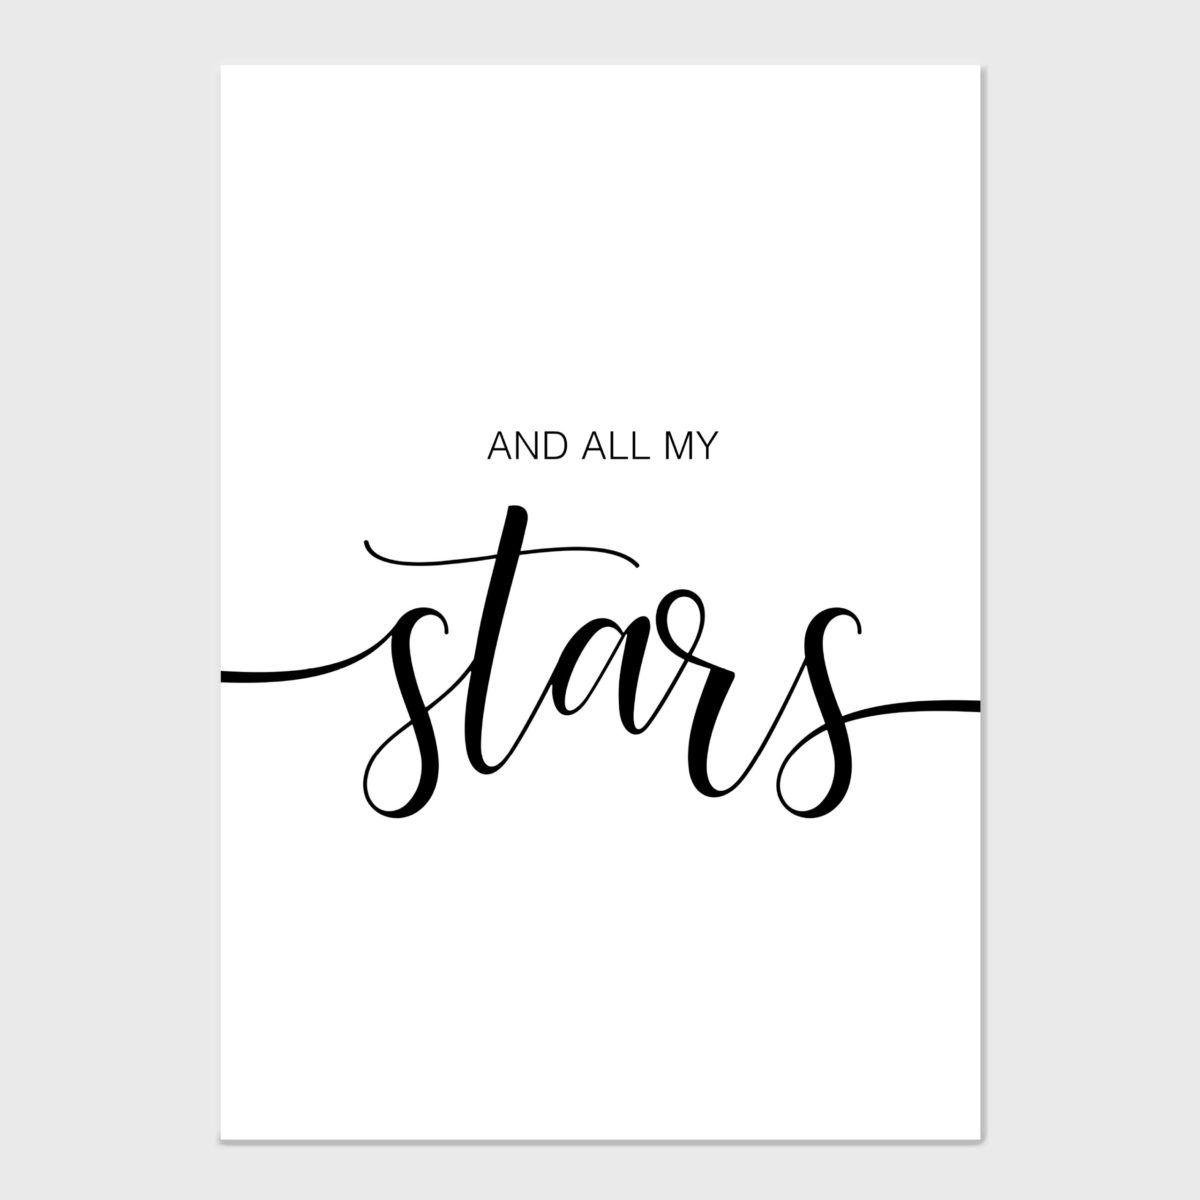 And all my stars – no frame